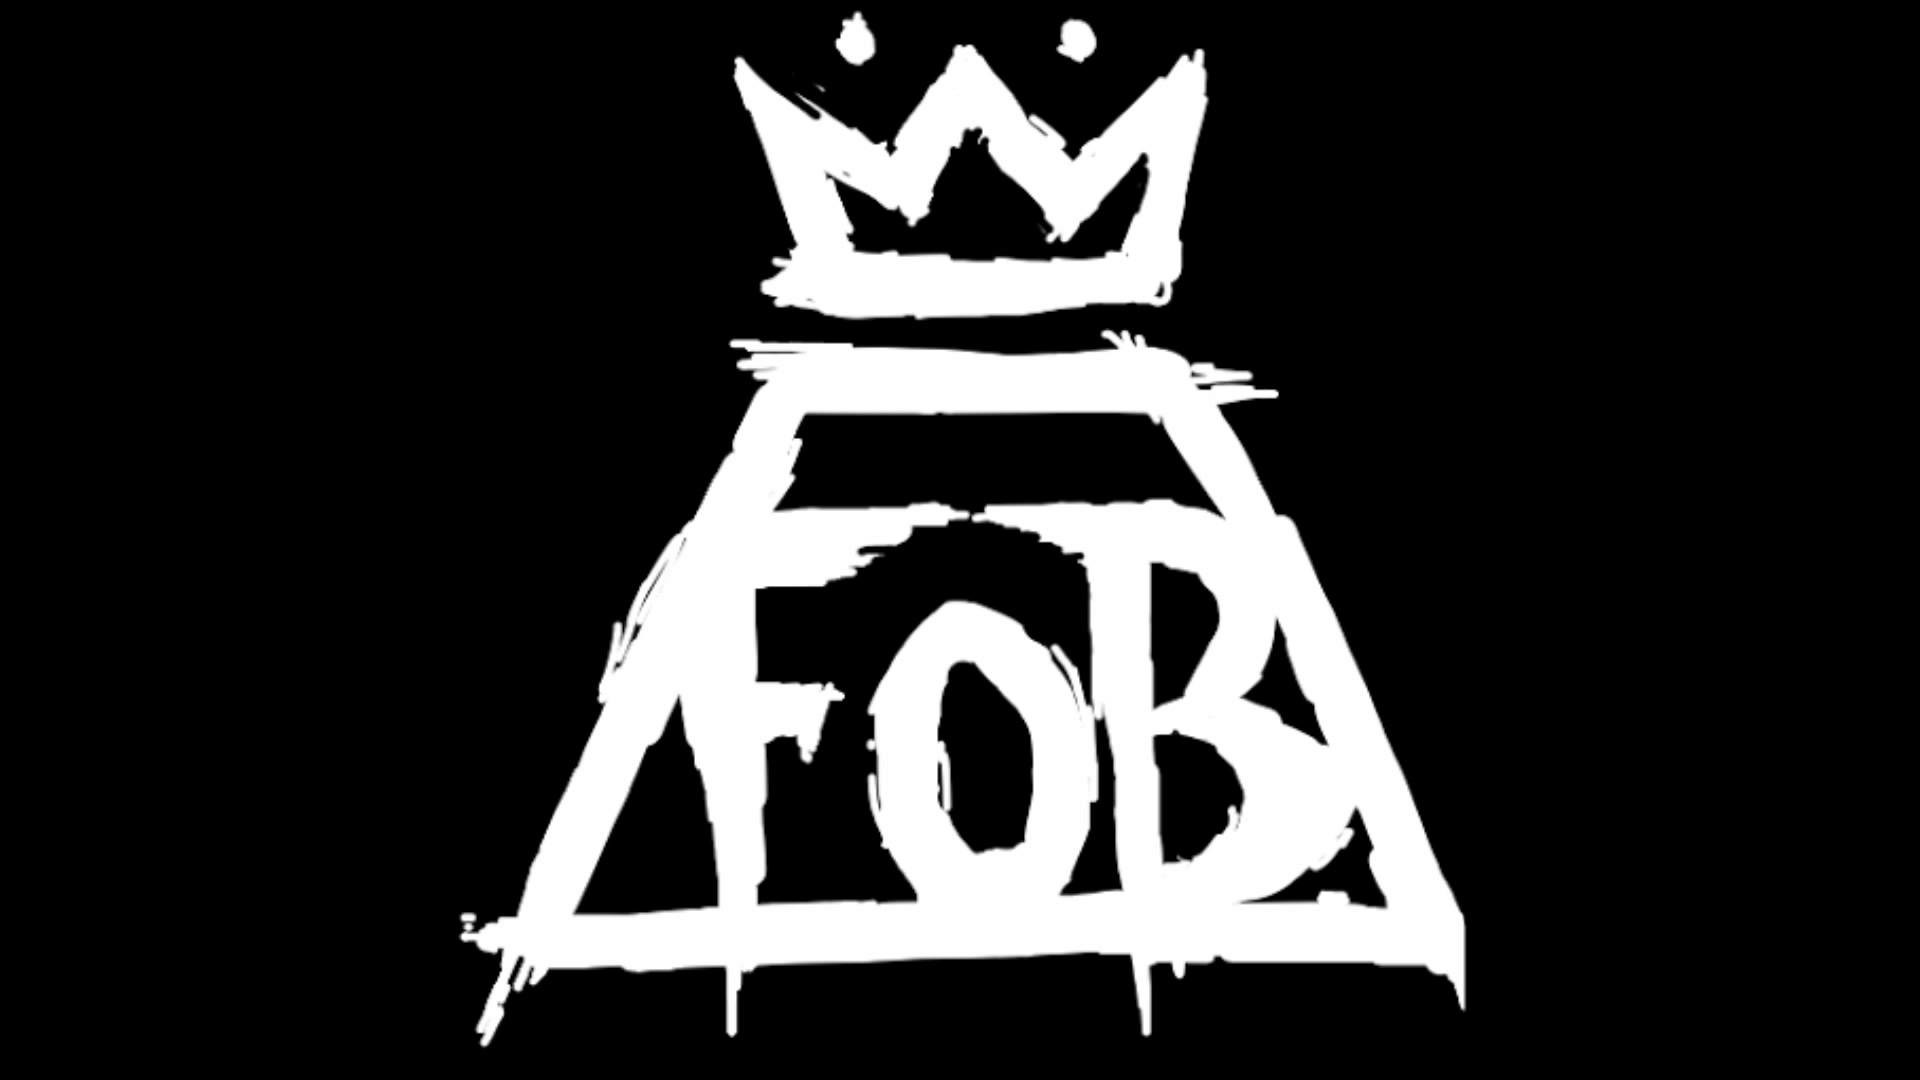 Fall Out Boy Wallpaper Ipad Fall Out Boy Logo Wallpaper 77 Images